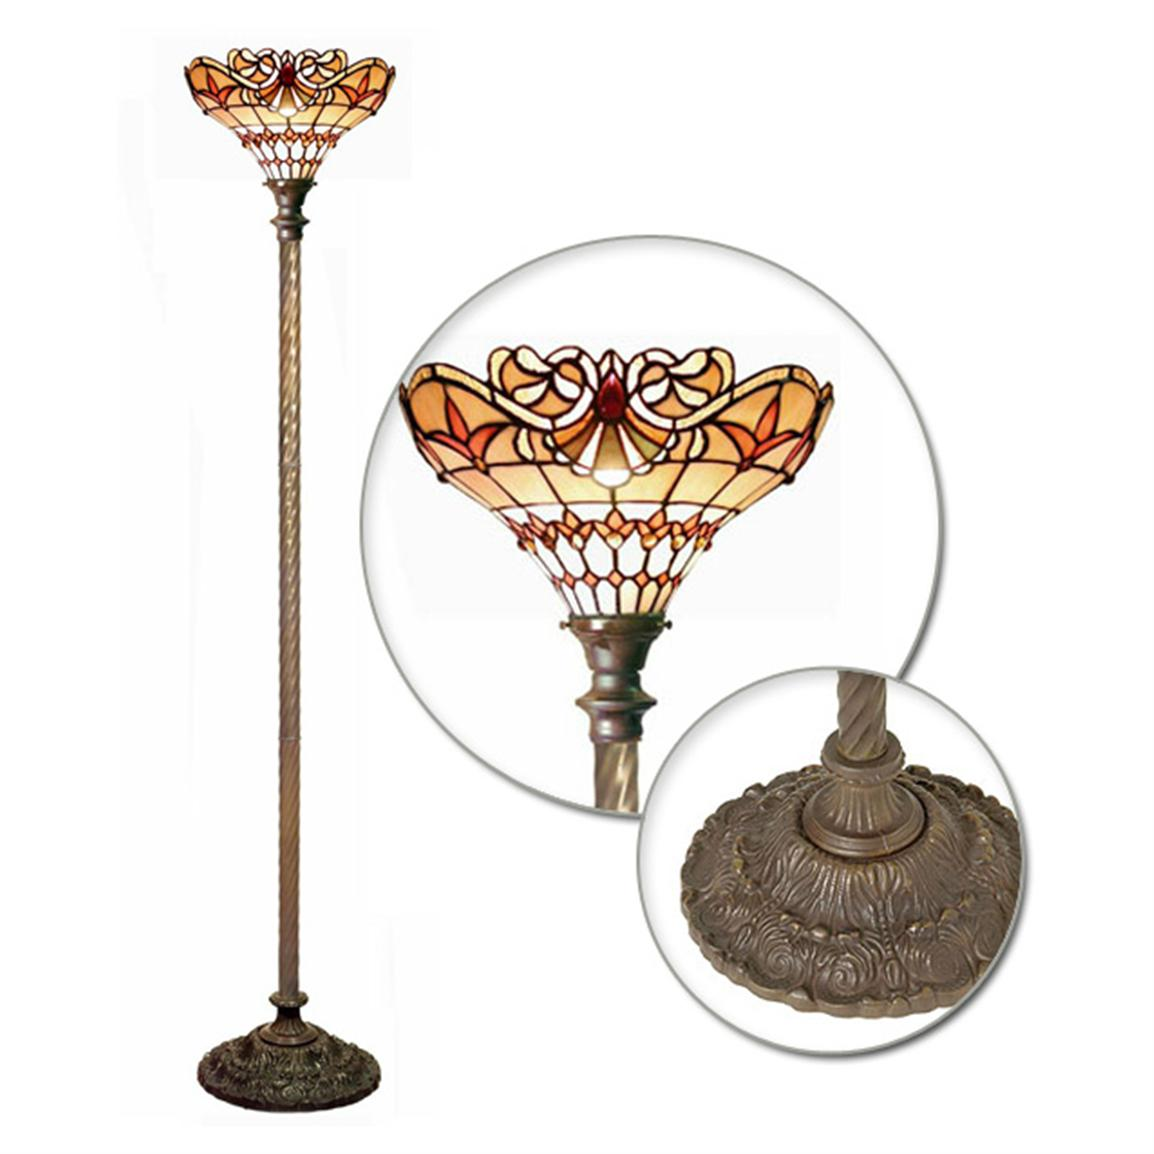 Tiffany-style Baroque Torchier Floor Lamp